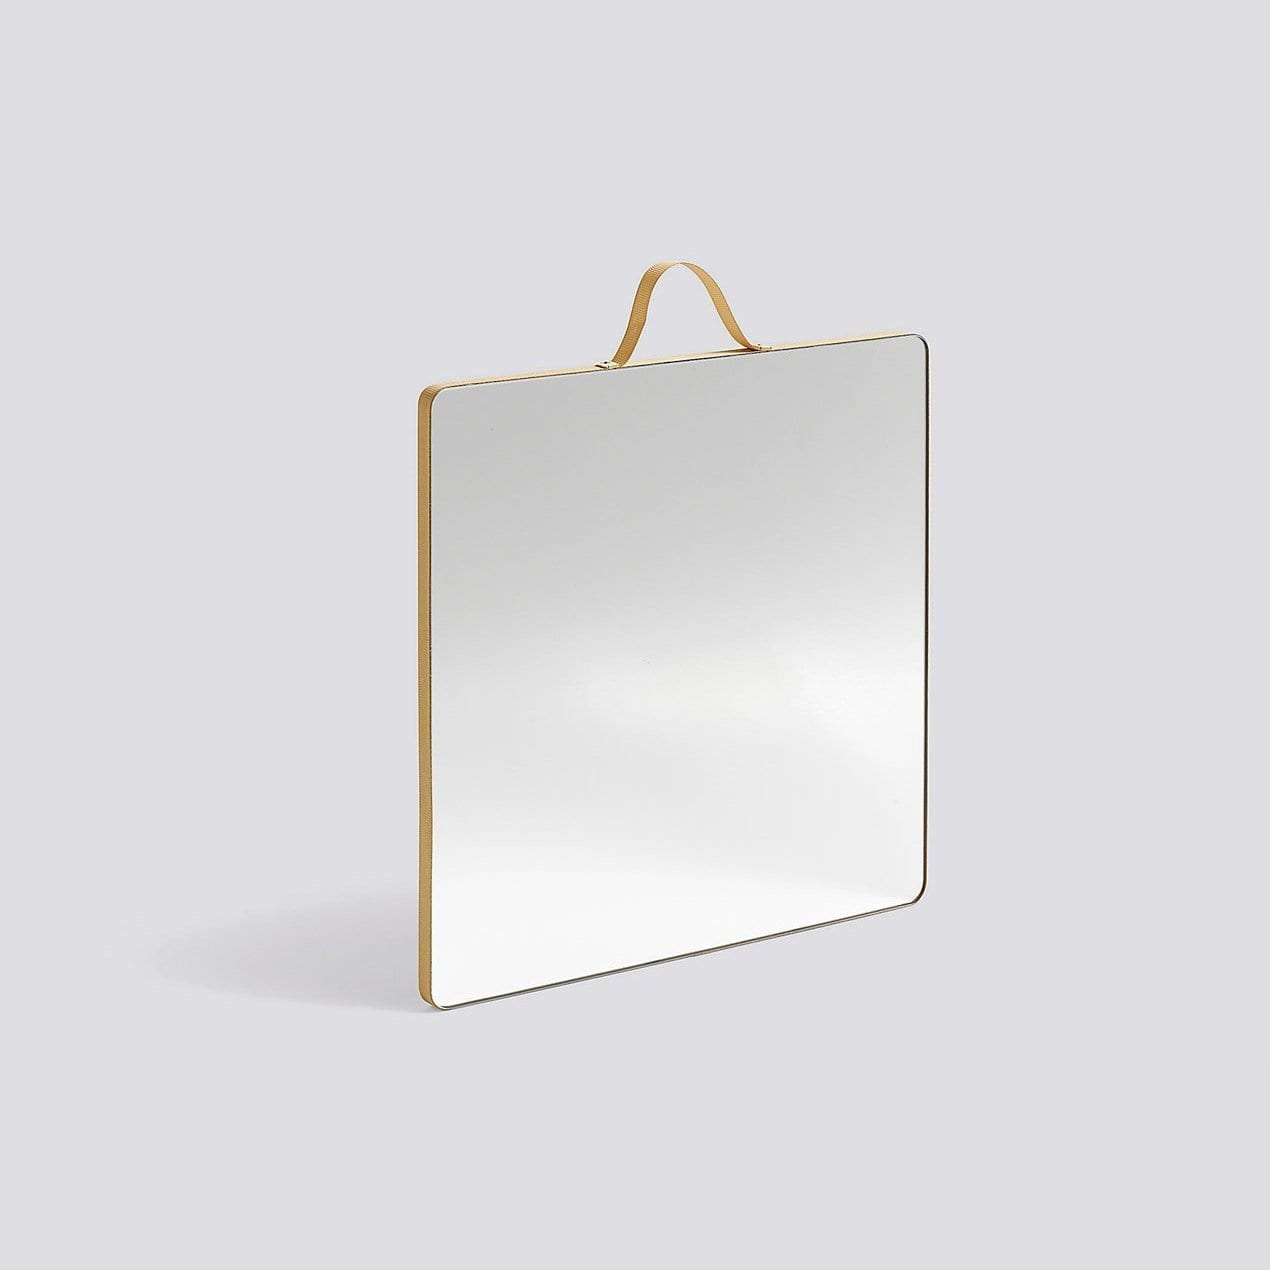 Ruban Mirror Square / Neighborhood Goods